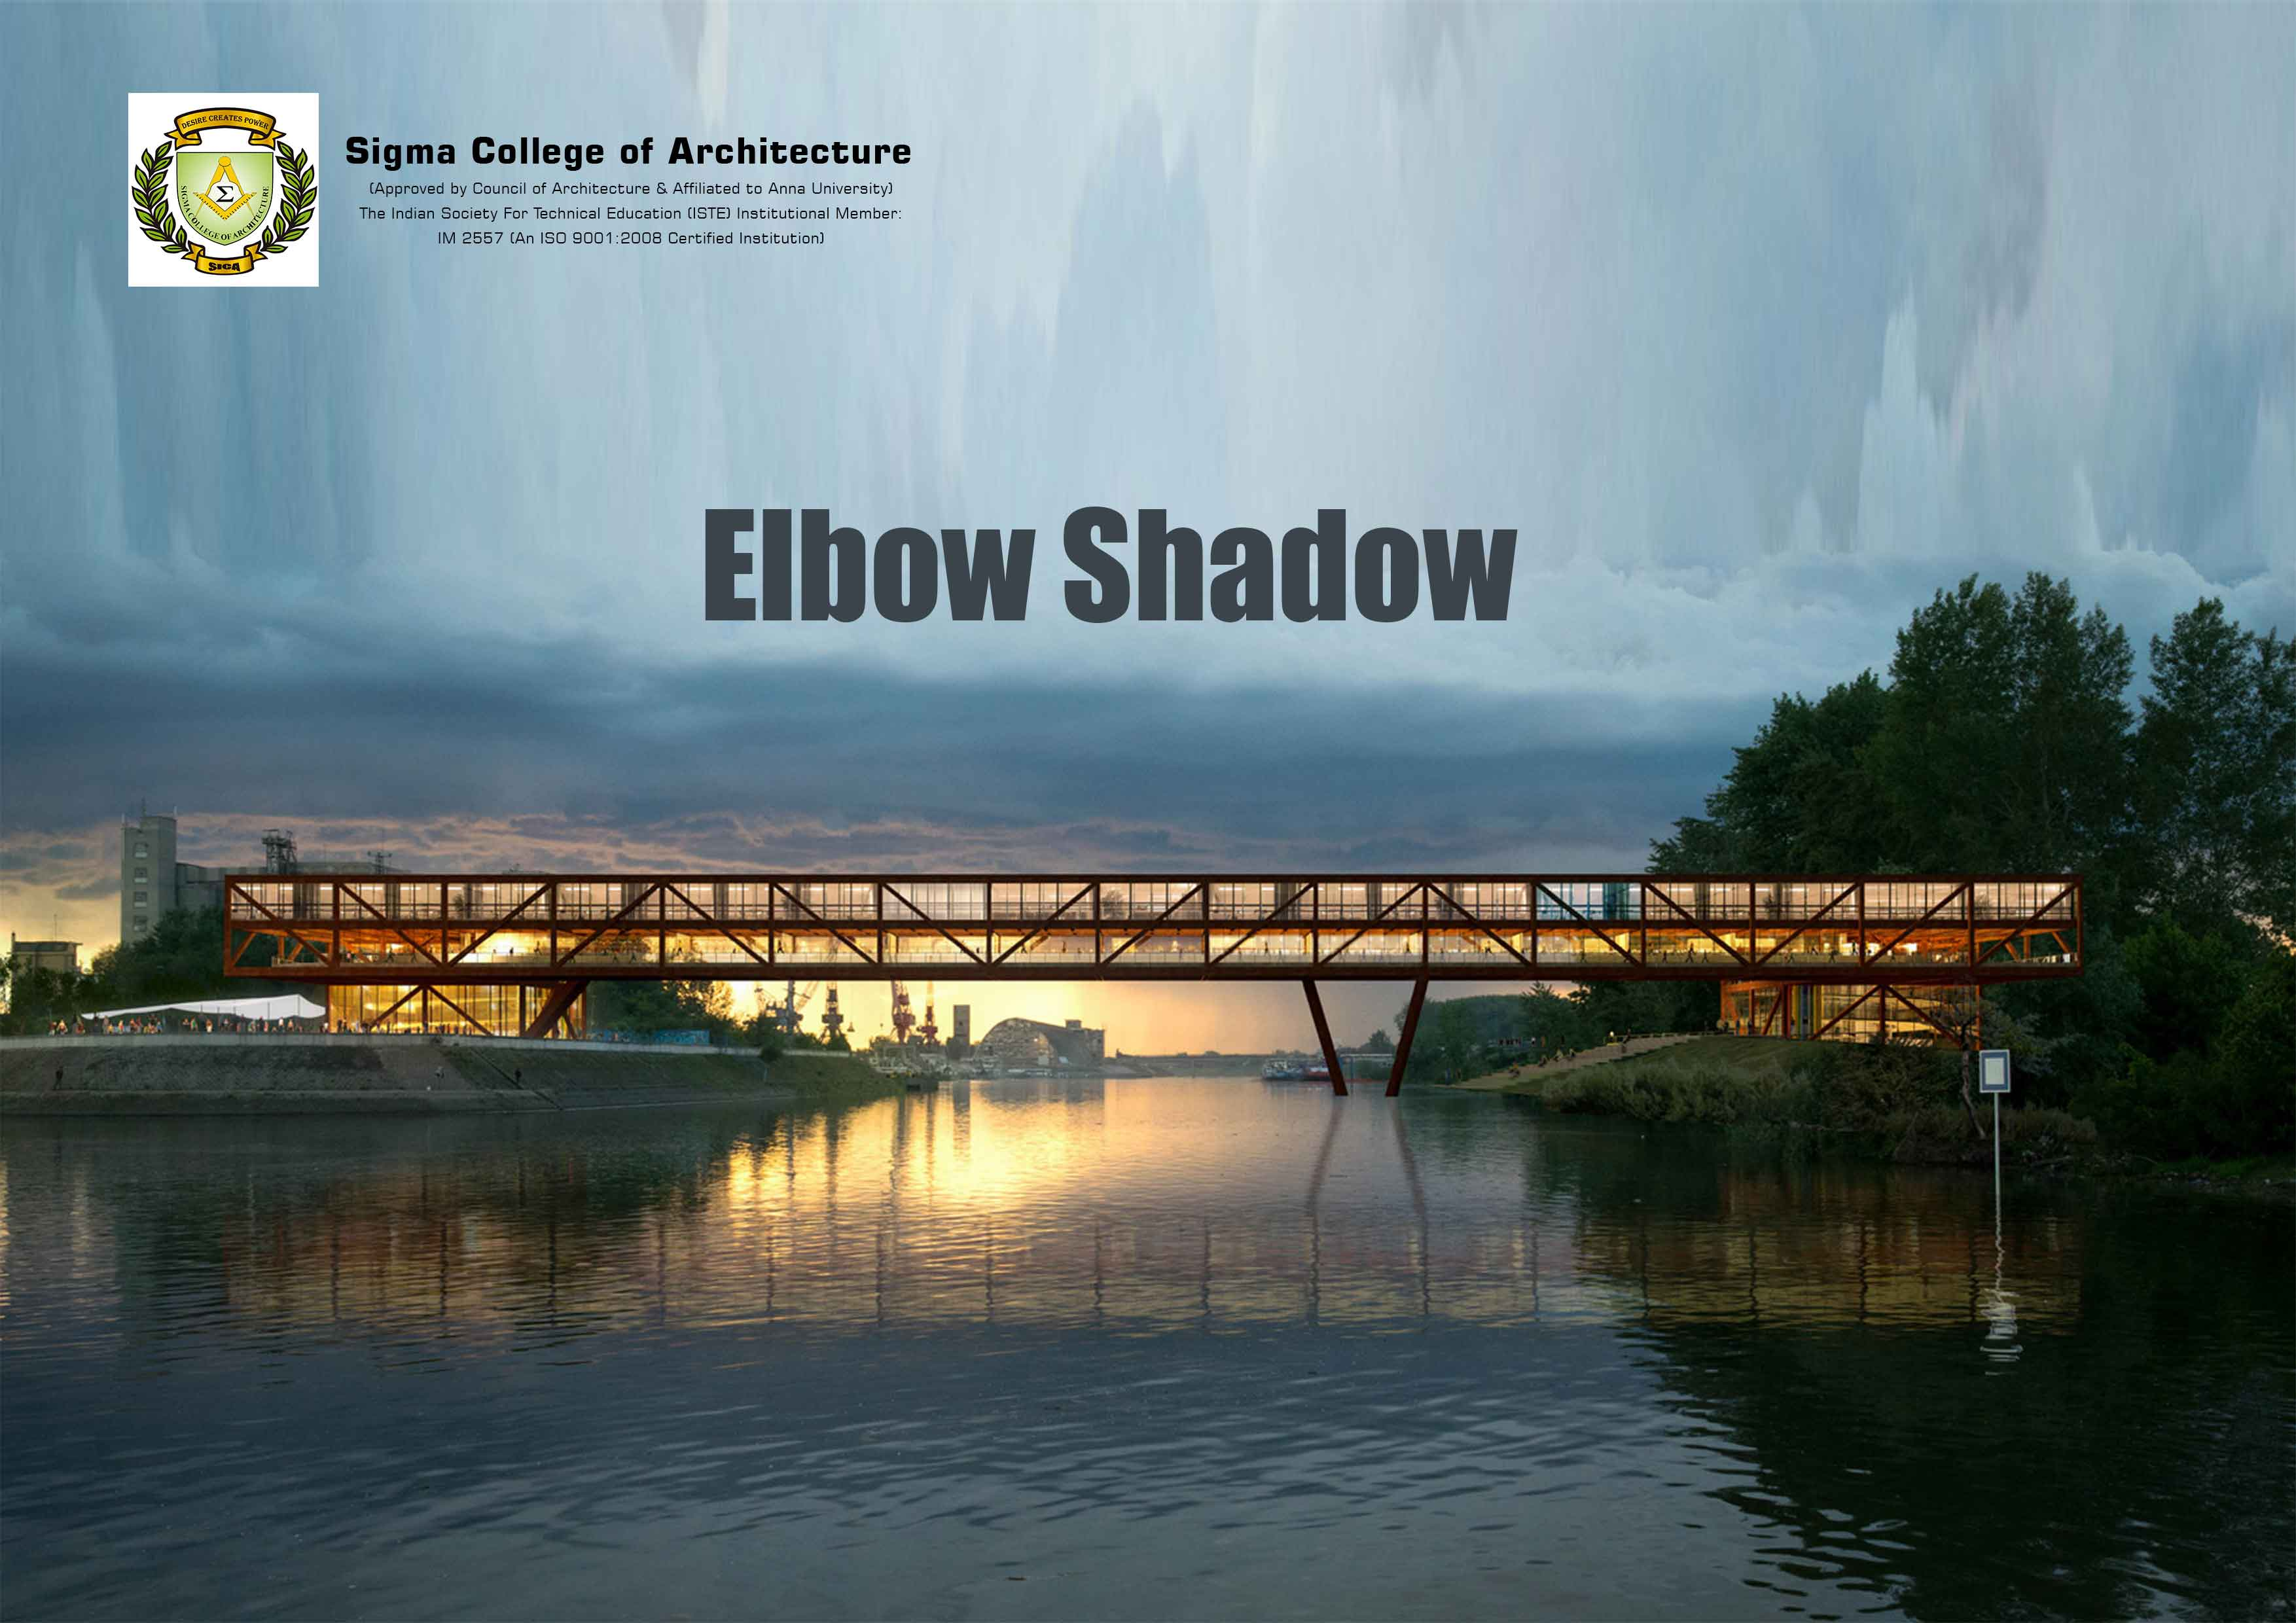 Elbow Shadow